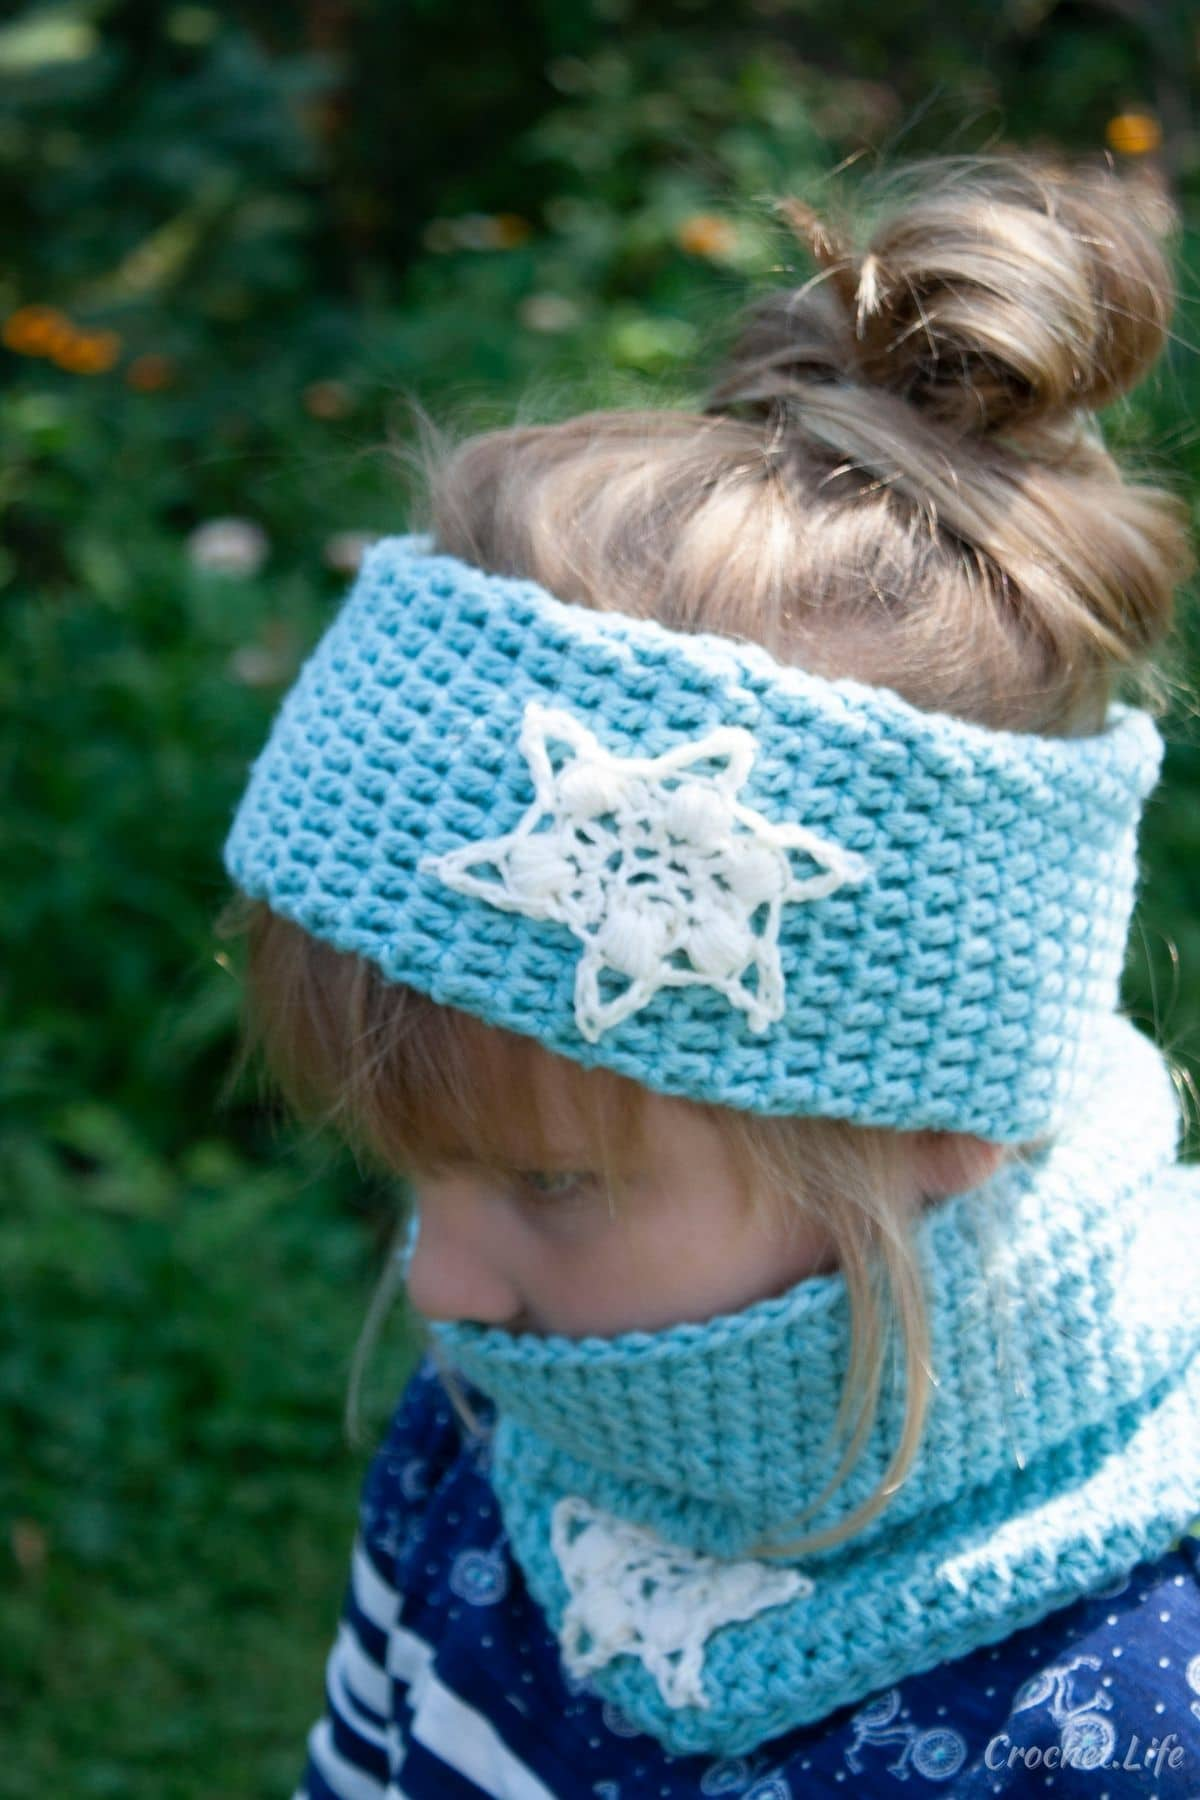 Blonde girl in blue shirt wearing light blue cowl and matching headband with white snowflakes